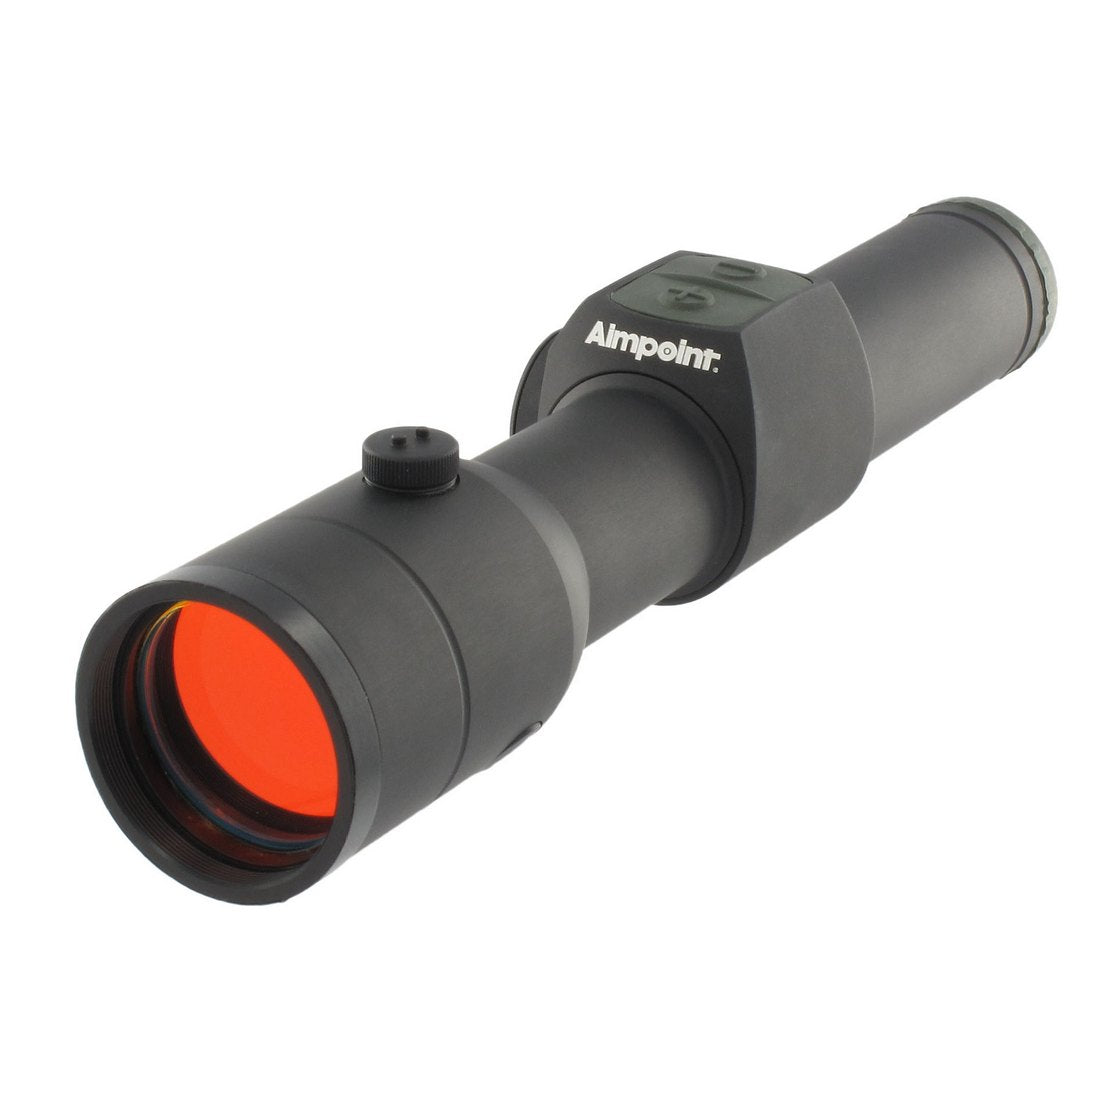 Aimpoint 12693 H34L Sight - Security Pro USA